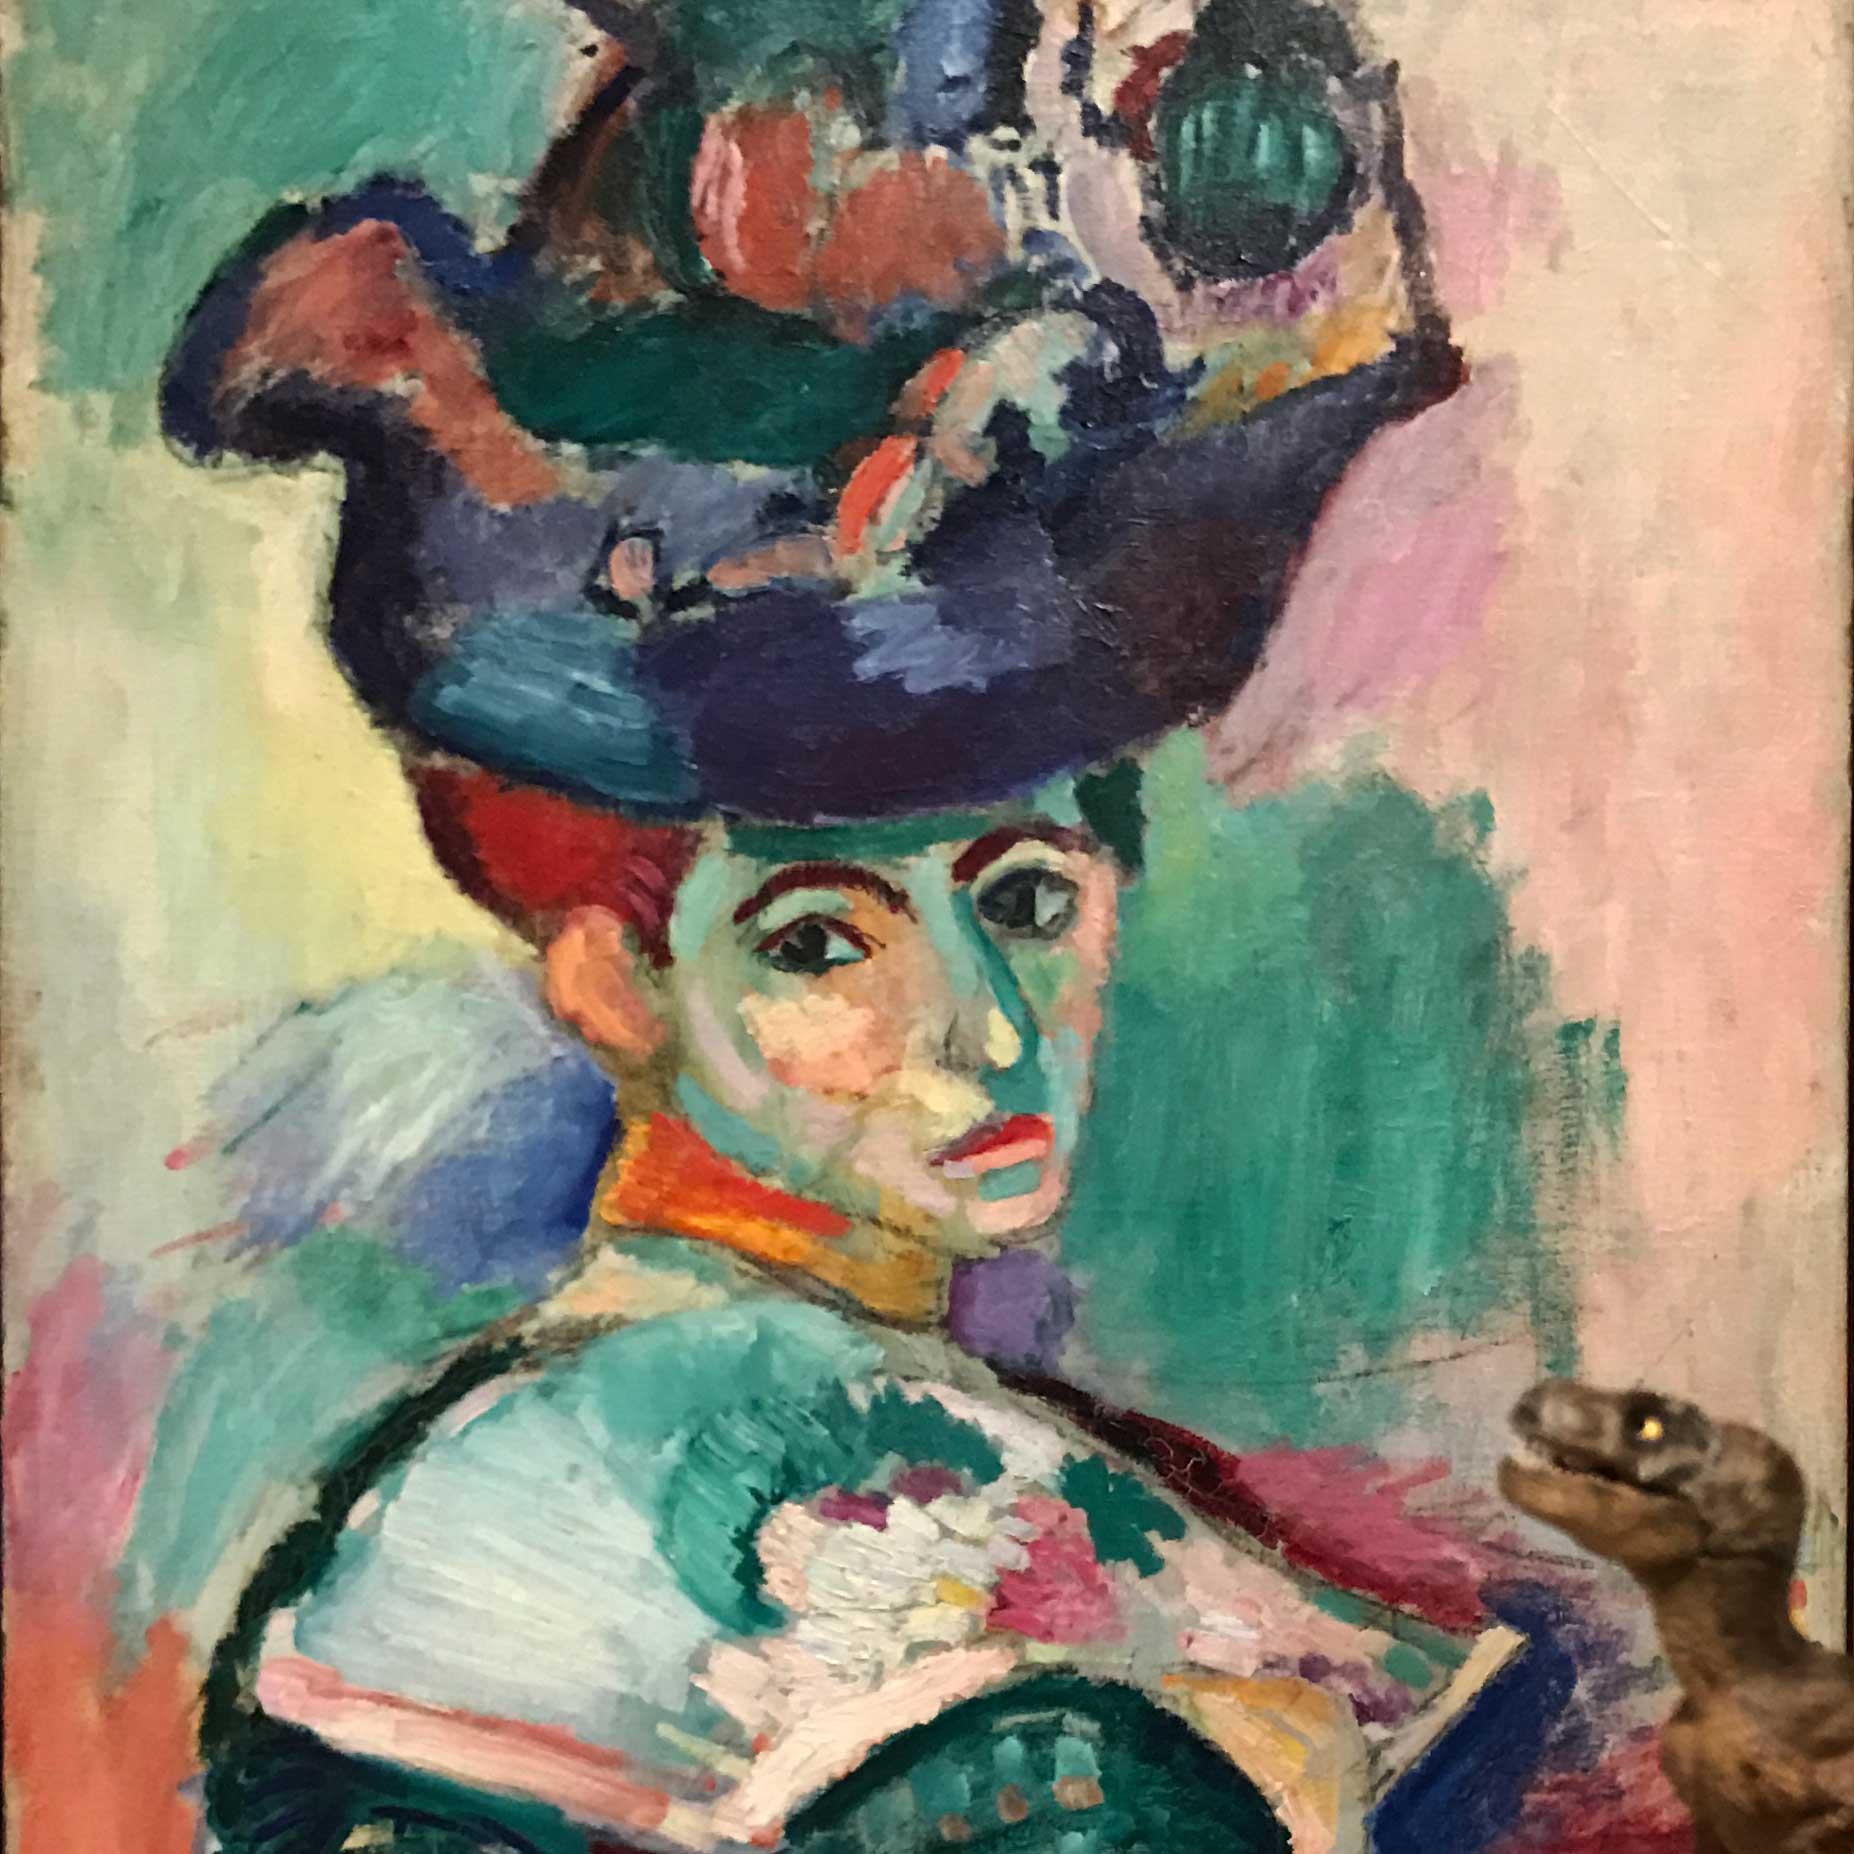 Henri Matisse,  Femme au Chapeau  (Woman with a Hat), 1905.